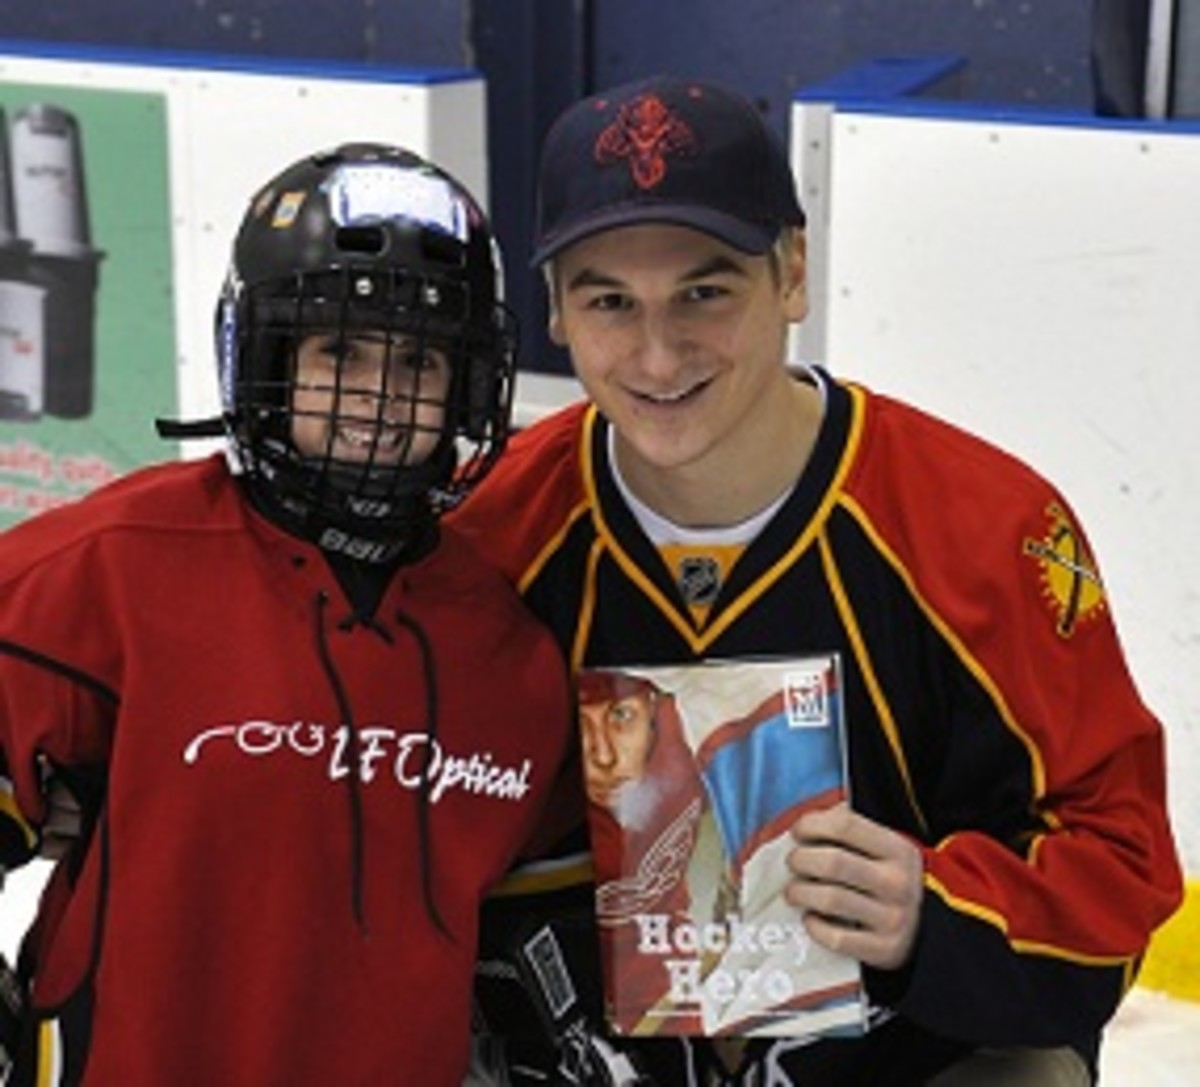 Here's Zach Hyman with his children's book and an excited fan.